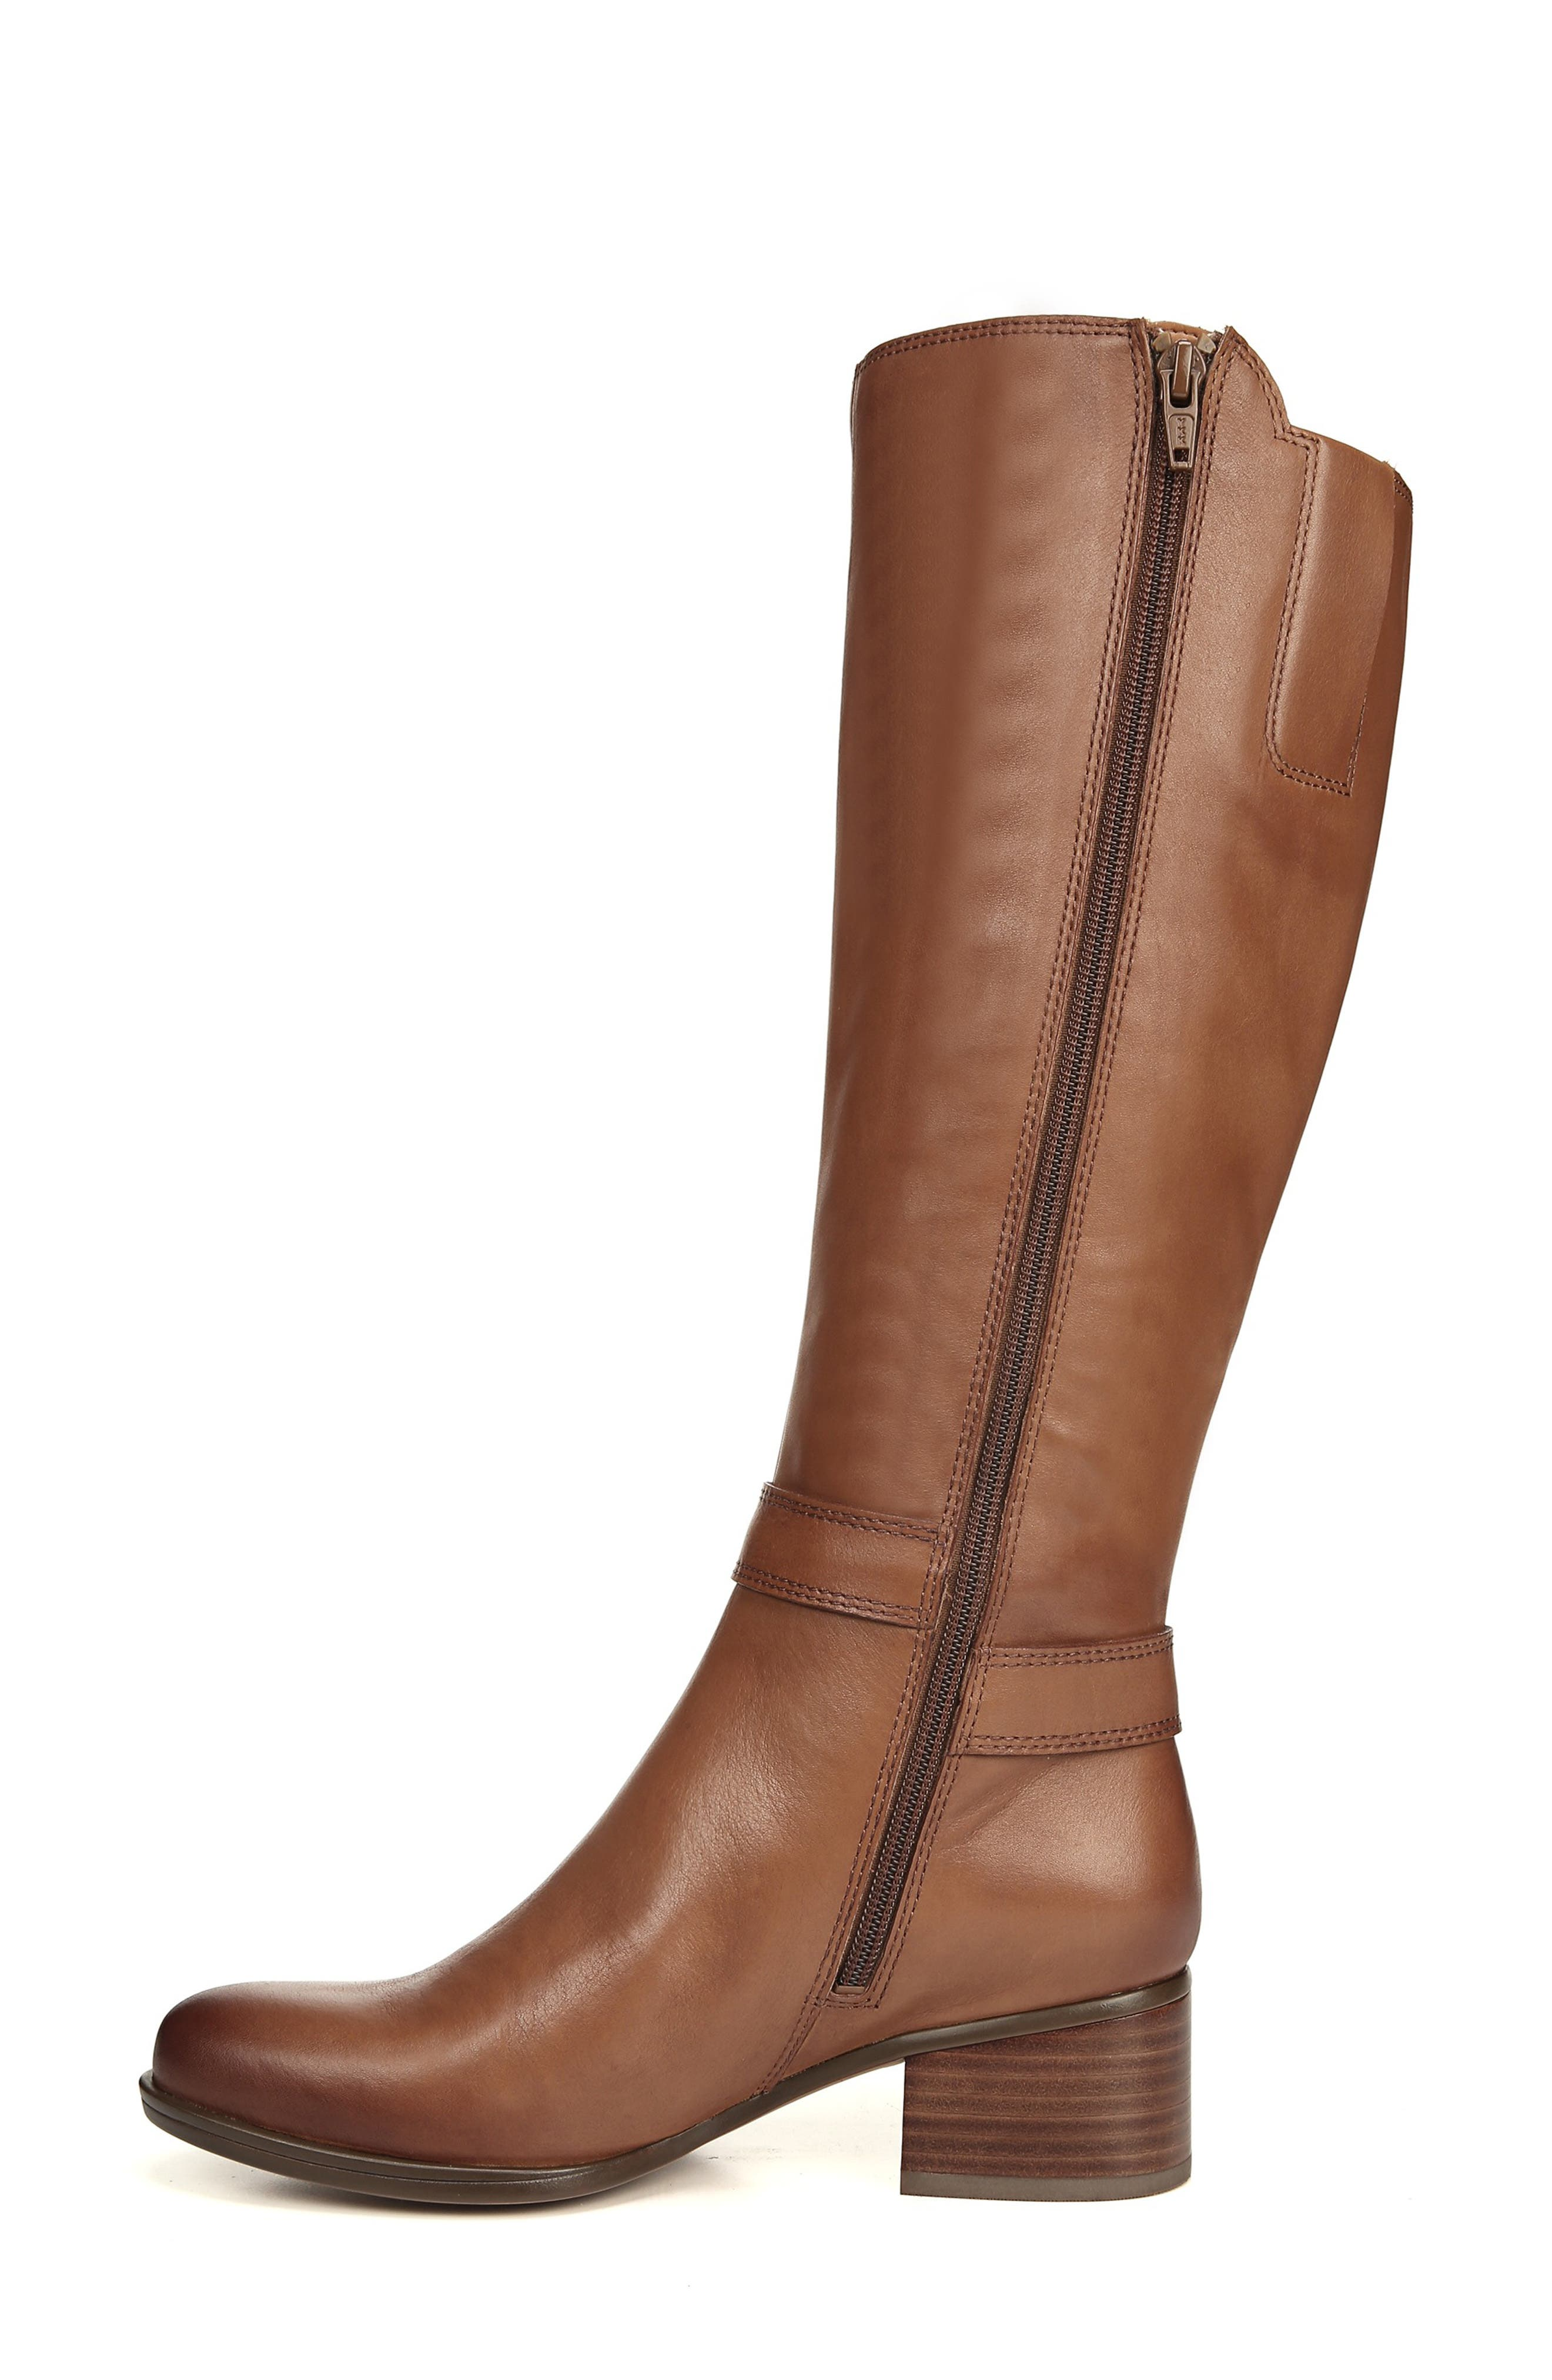 NATURALIZER, Dane Knee High Riding Boot, Alternate thumbnail 7, color, MAPLE LEATHER